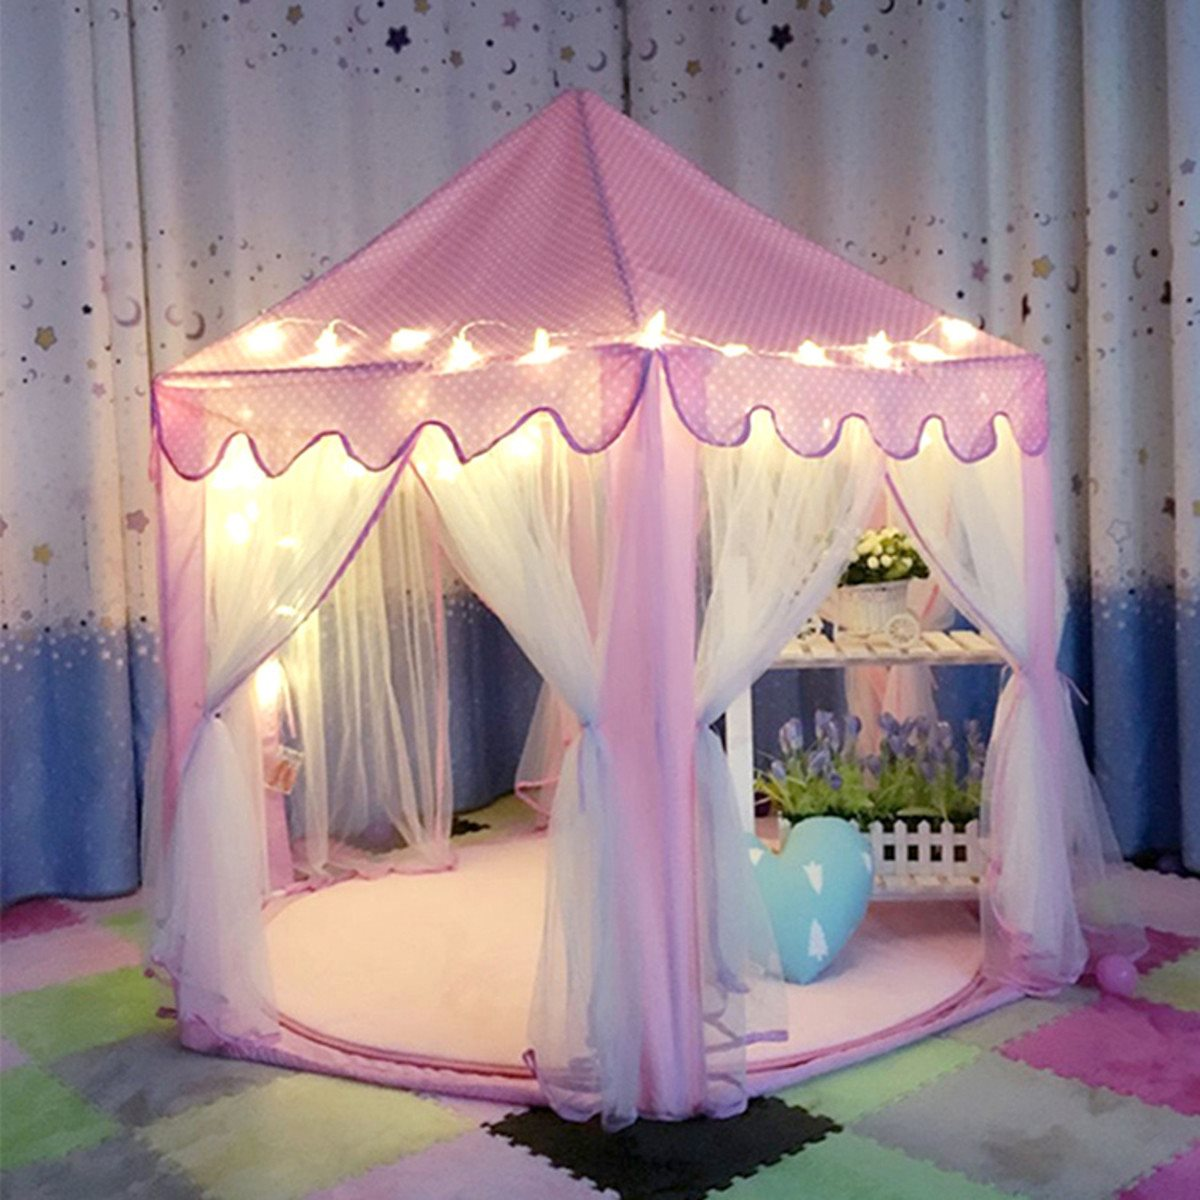 Lovely Girls Pink Portable Princess Castle Cute Playhouse Children Kids Play Tent Outdoor Toys Beach Tent For Children Kids-in Toy Tents from Toys u0026 Hobbies ... & Lovely Girls Pink Portable Princess Castle Cute Playhouse Children ...